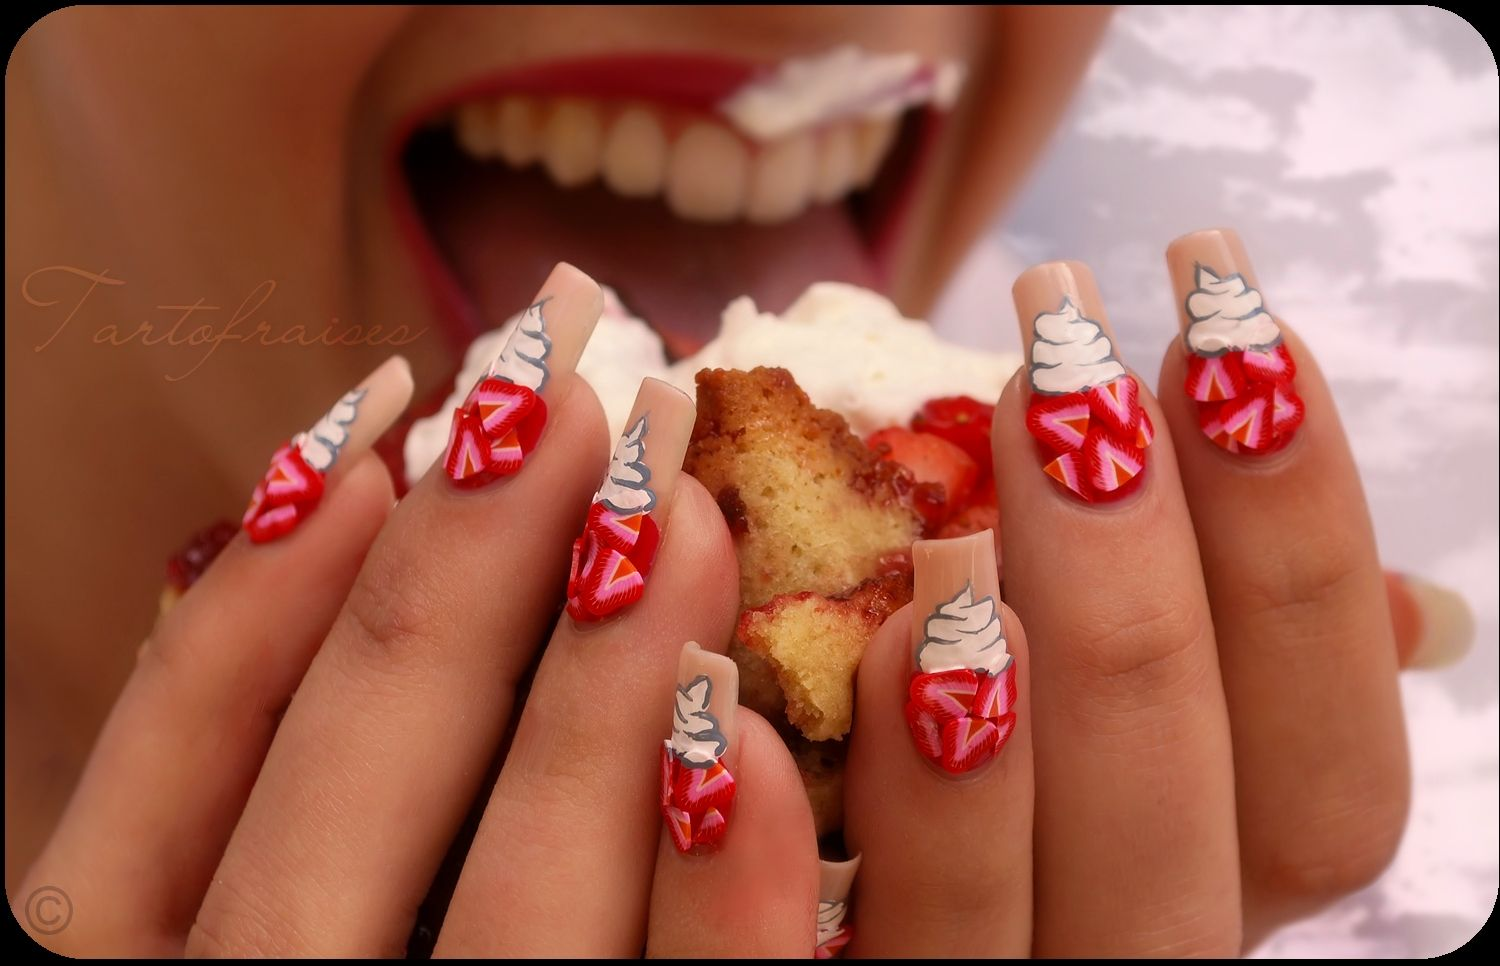 Best Nail Art Designs Trp Yahoo India Image Search Results Best